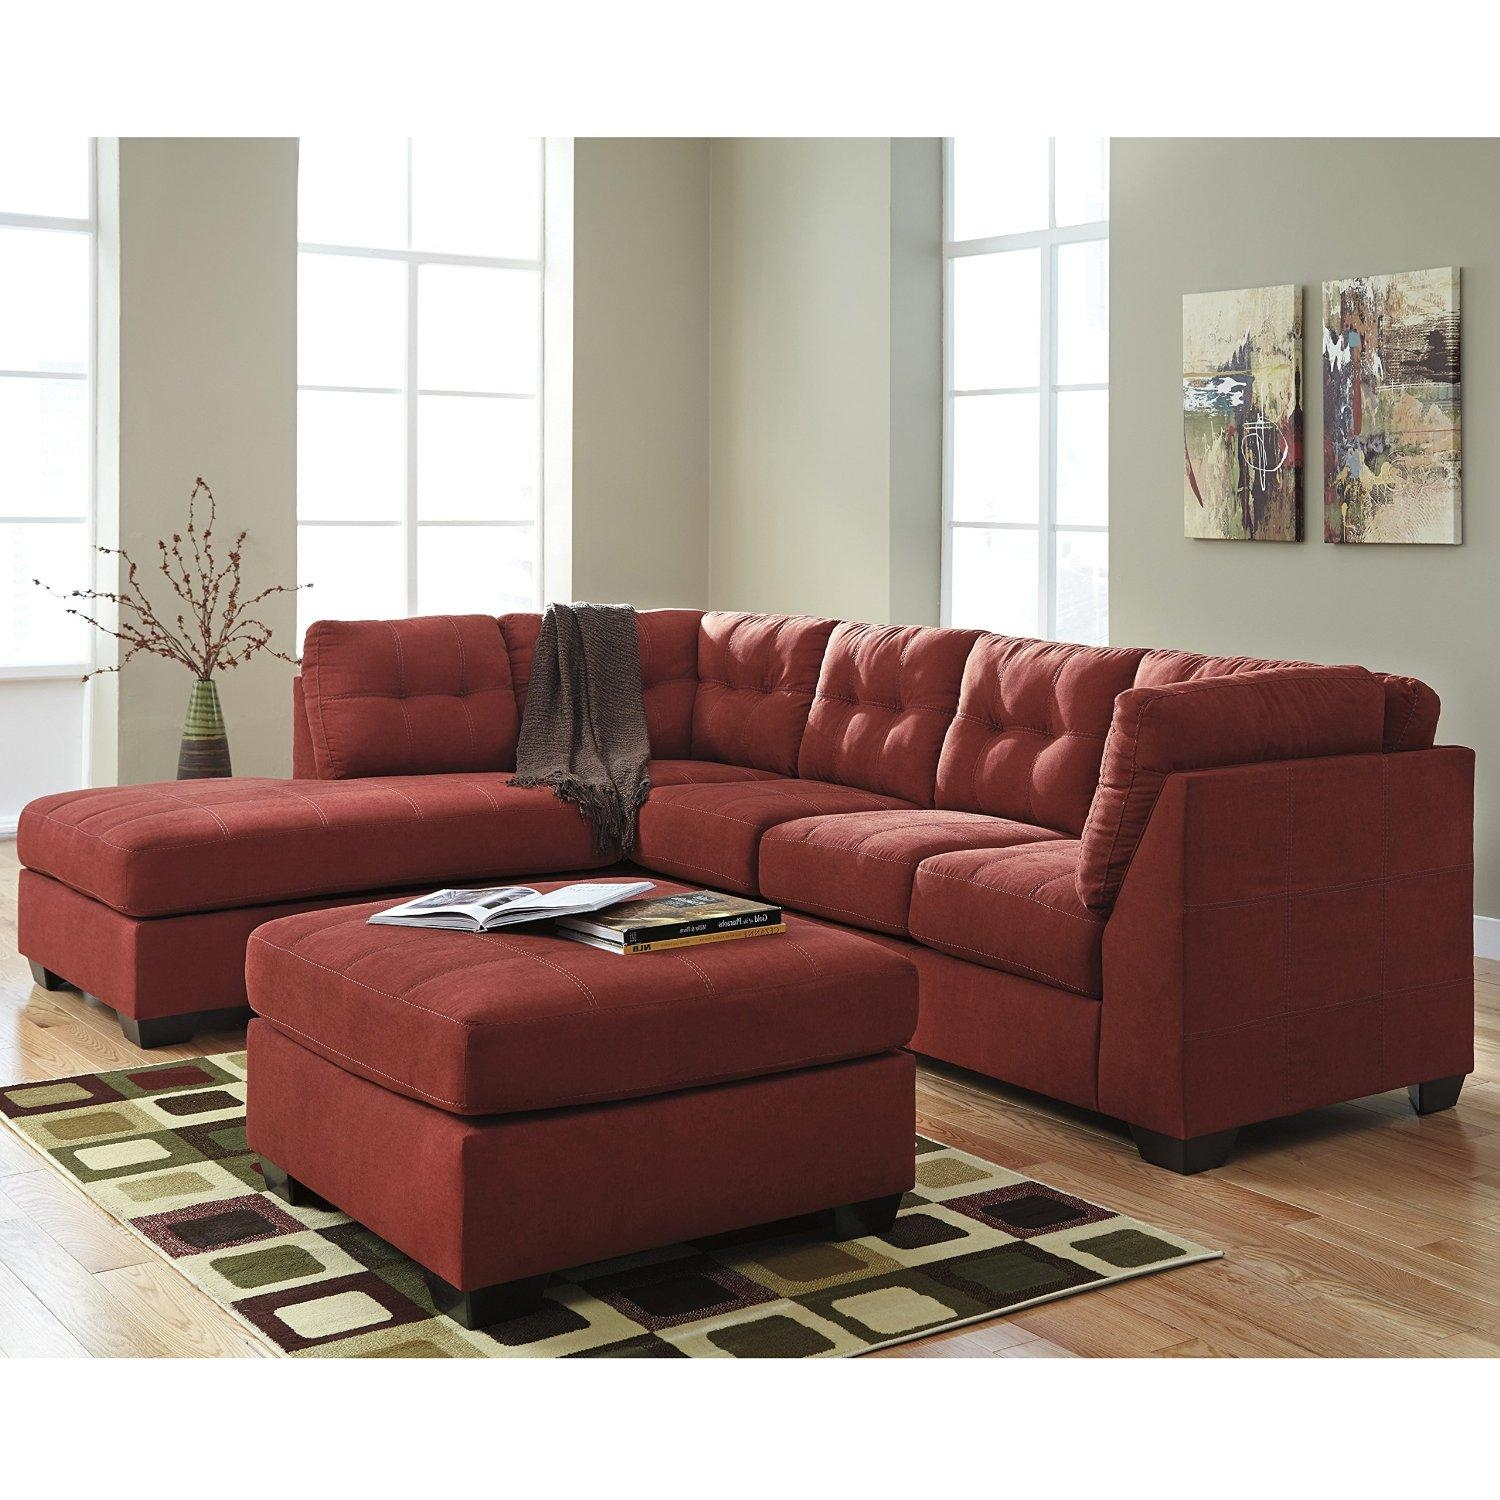 15 photos berkline sectional sofa sofa ideas for Berkline chaise recliner